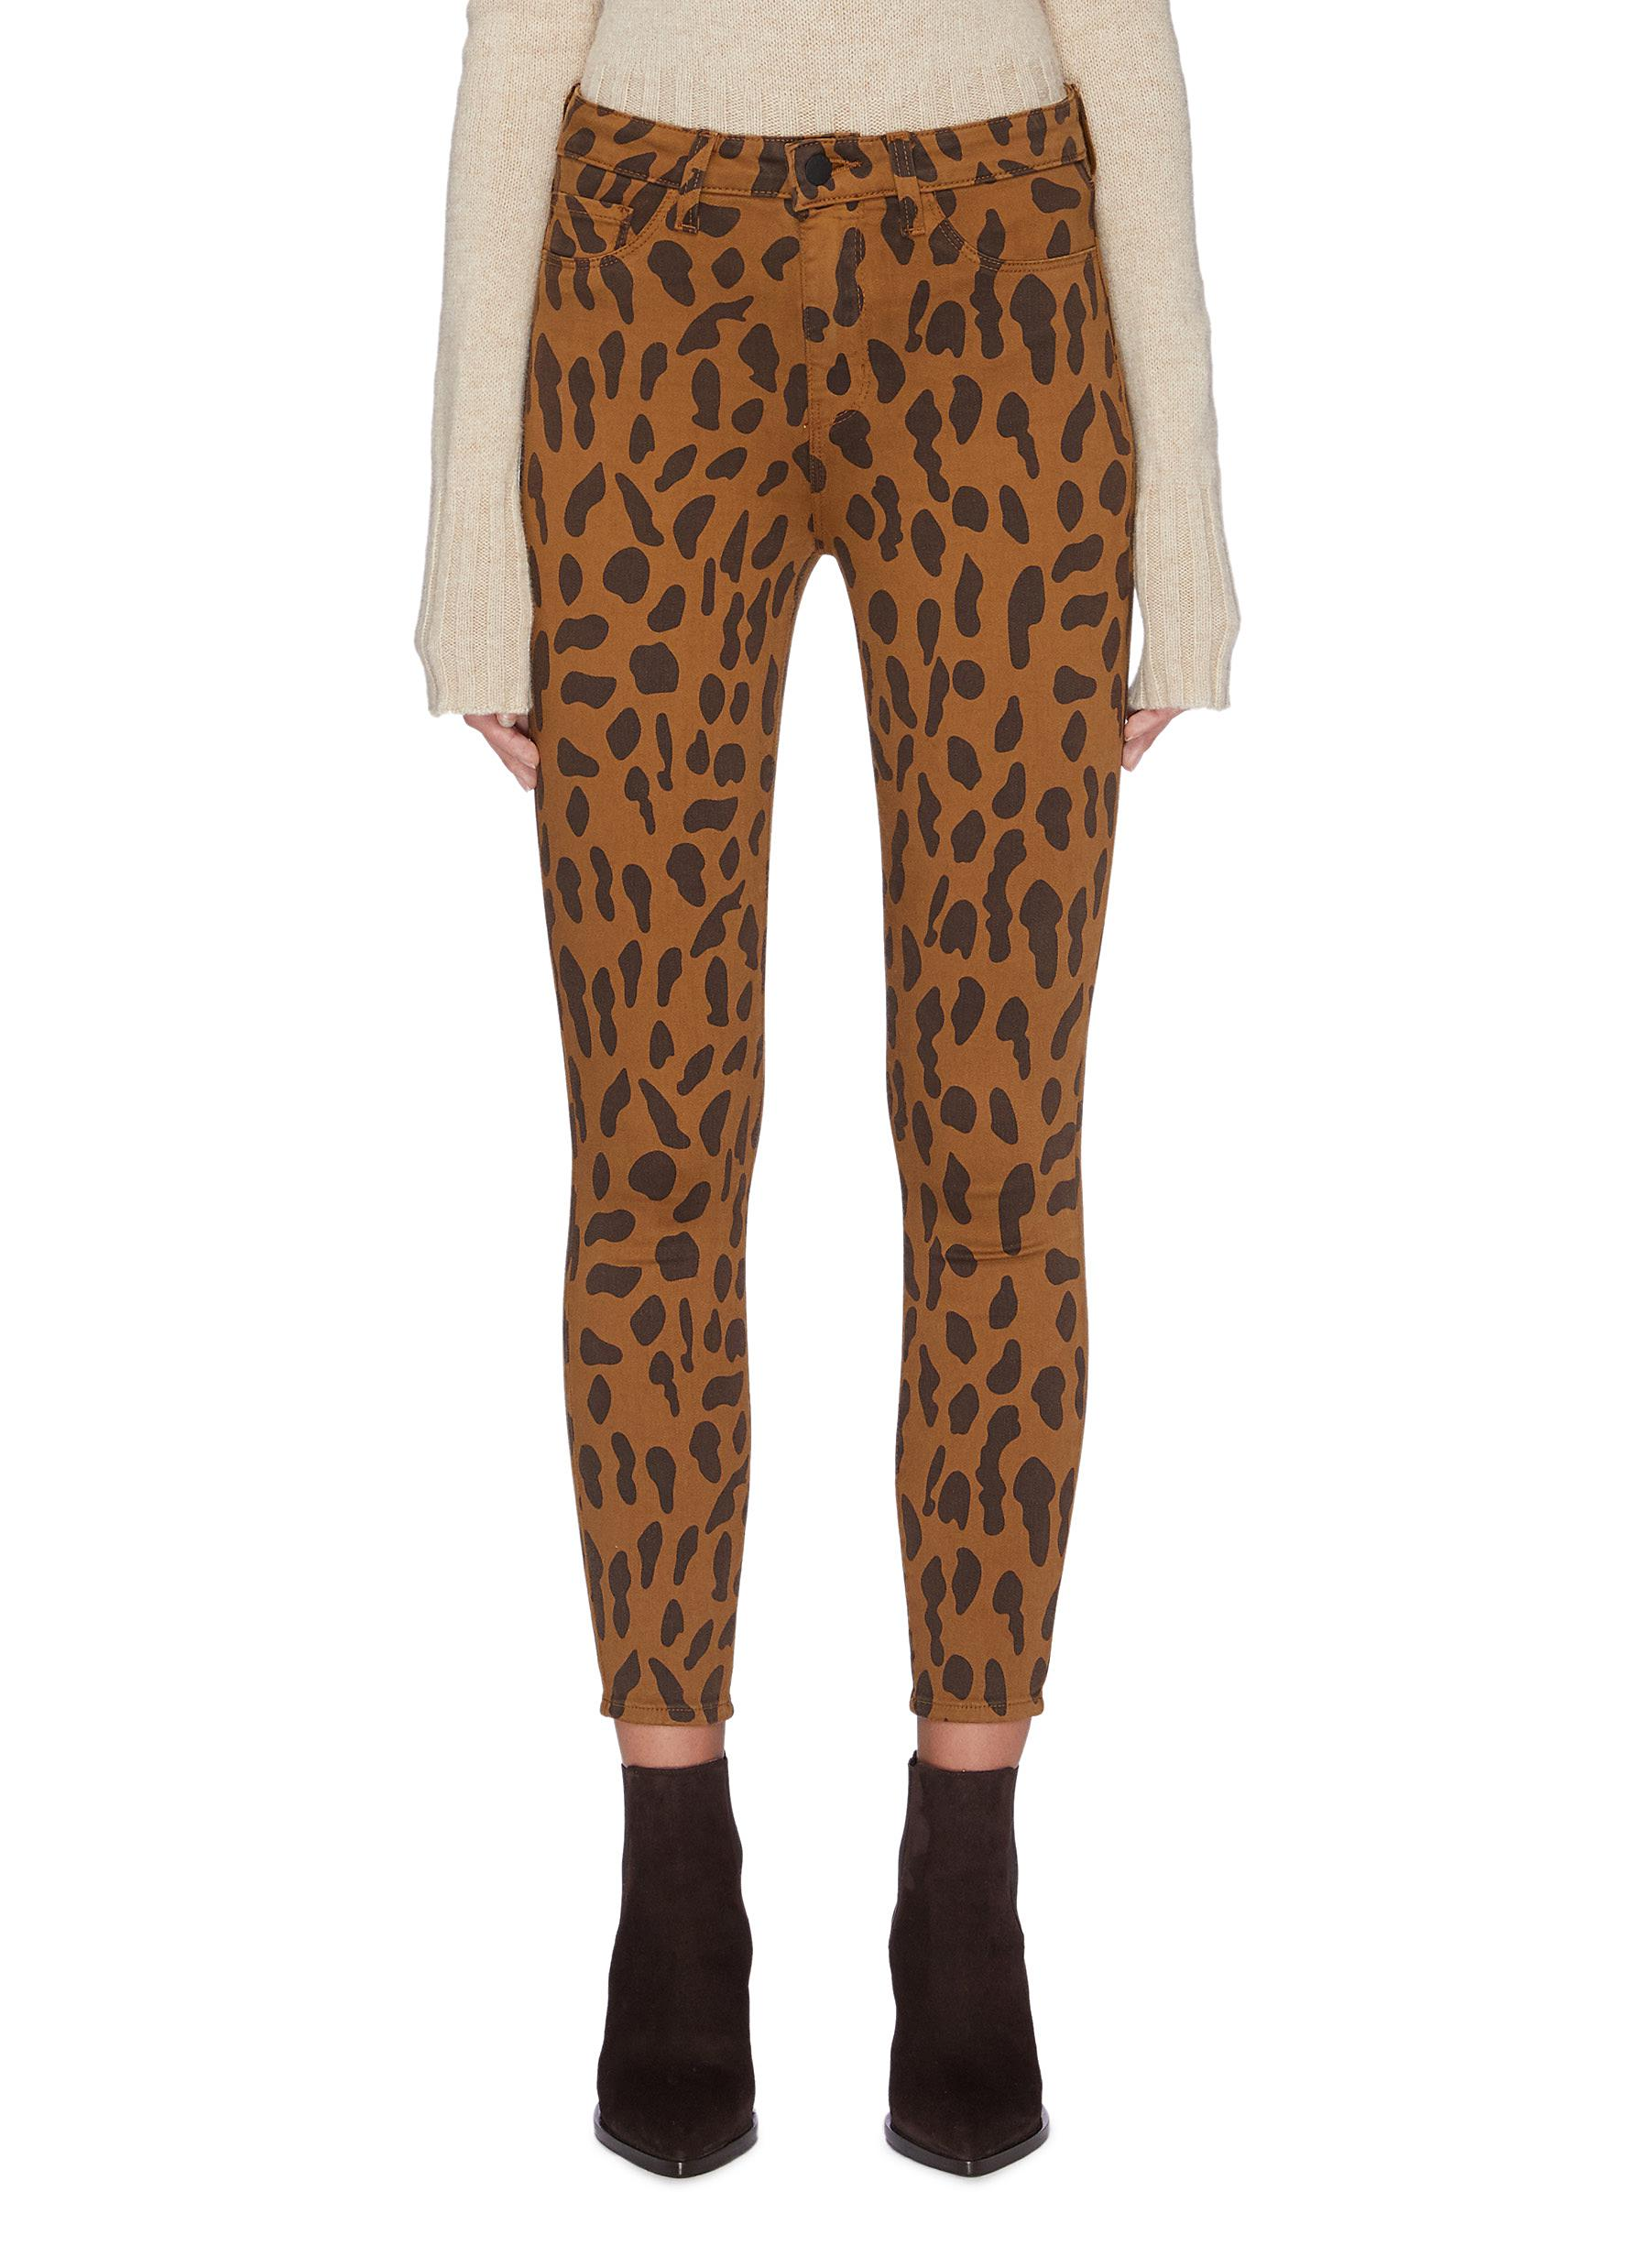 Margot leopard print skinny jeans by L'Agence